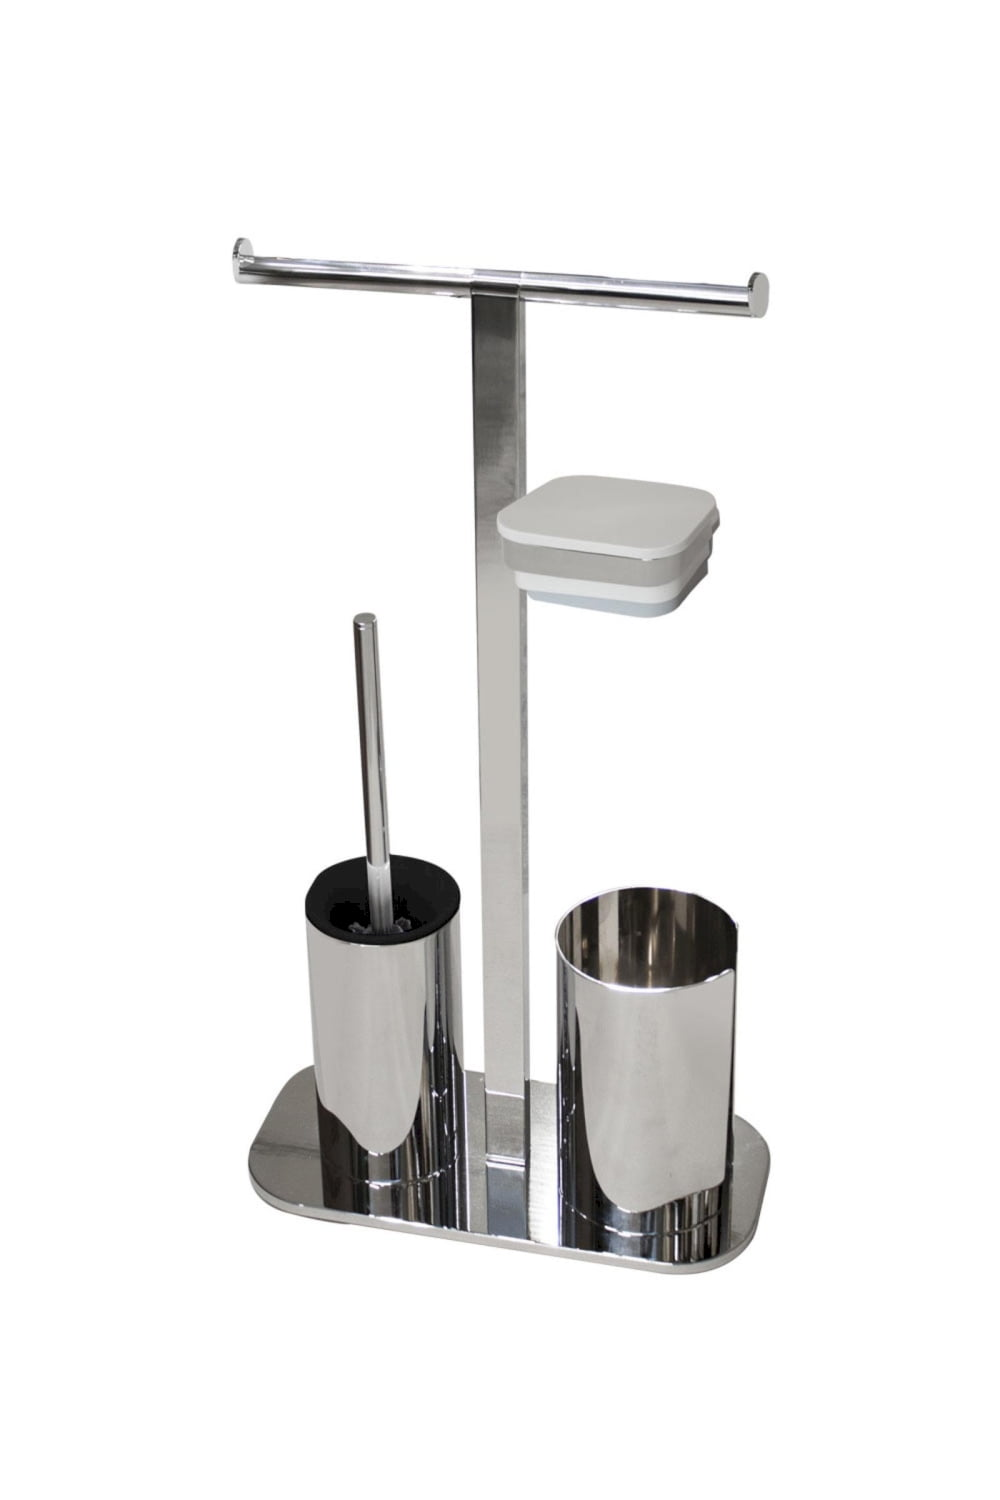 Accessoires VIGOUR Standmodell individual